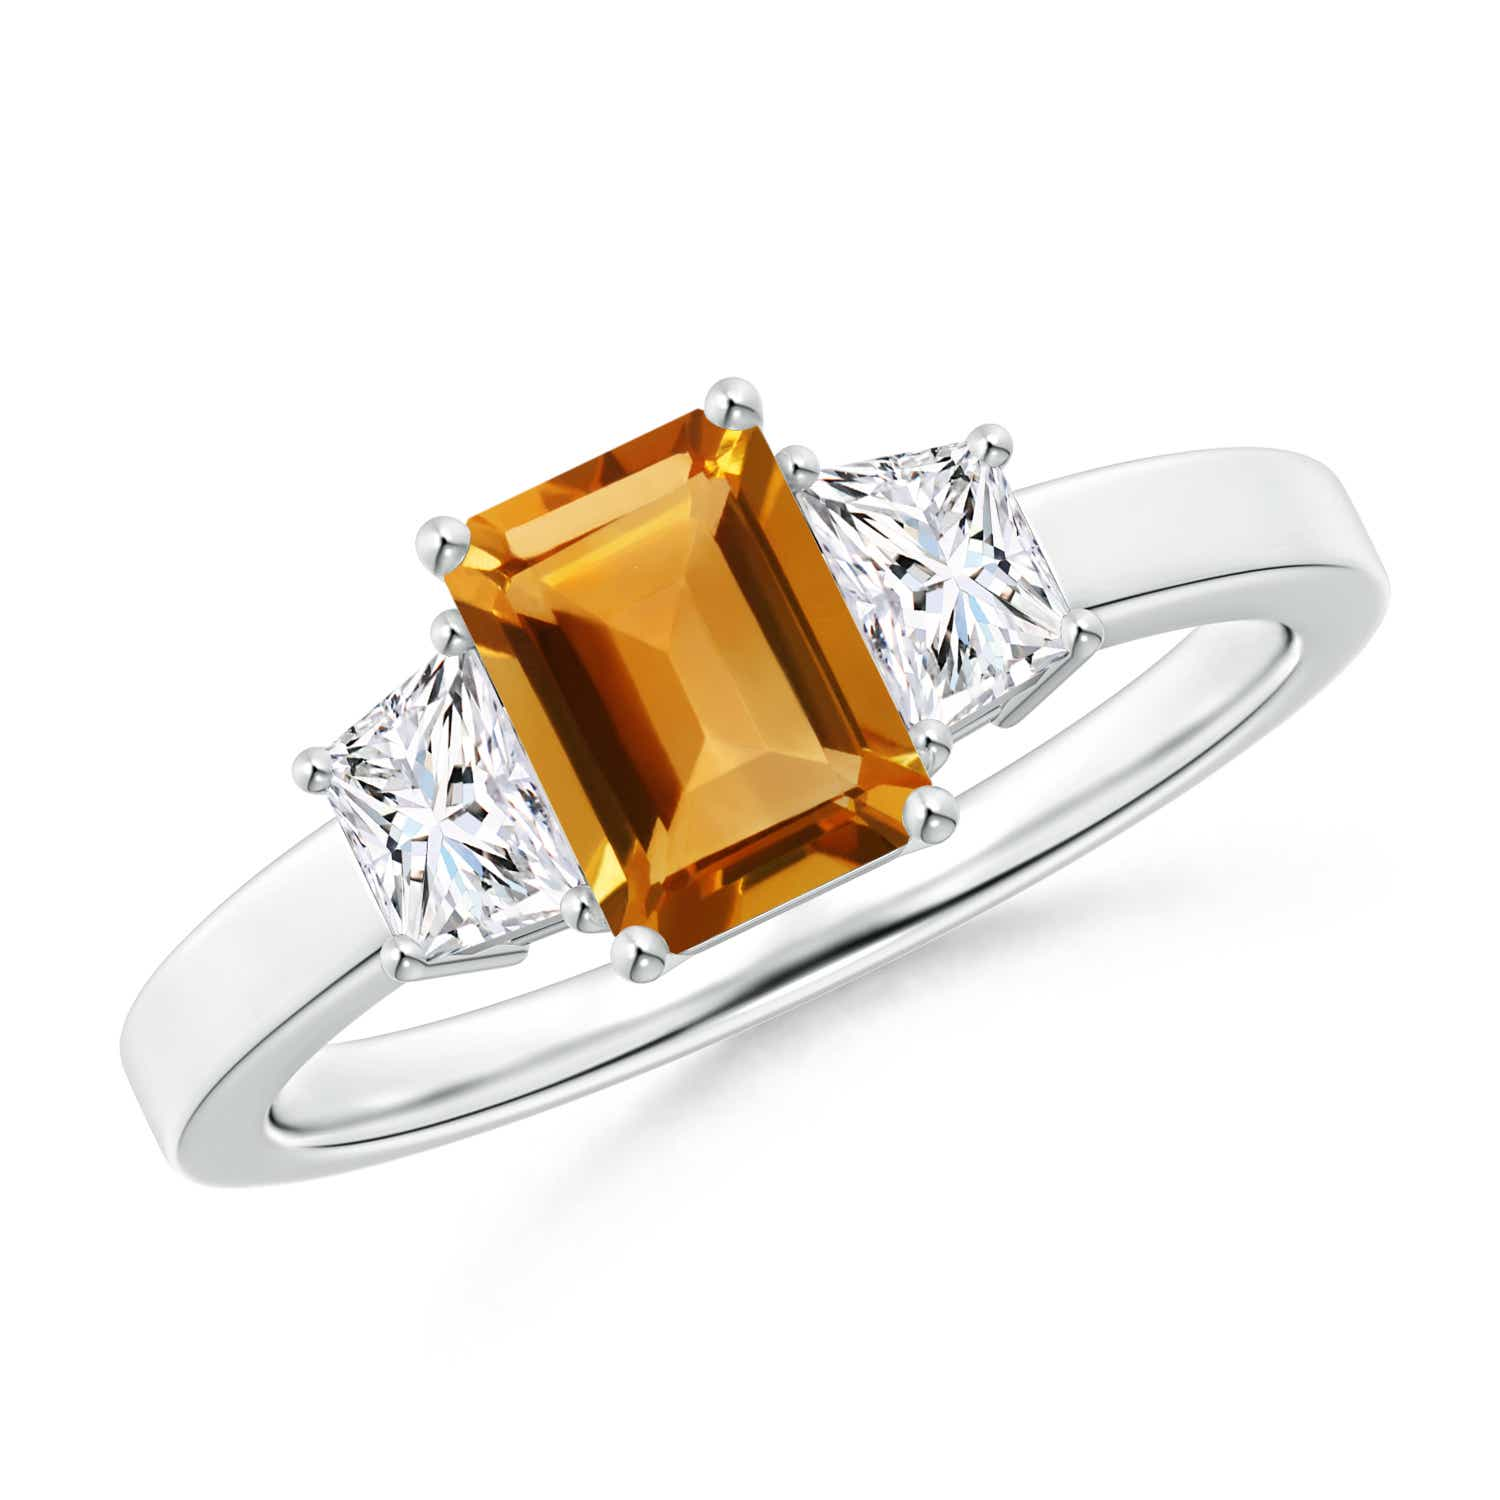 Angara Emerald-Cut Citrine Cocktail Ring in Rose Gold kWwVAv